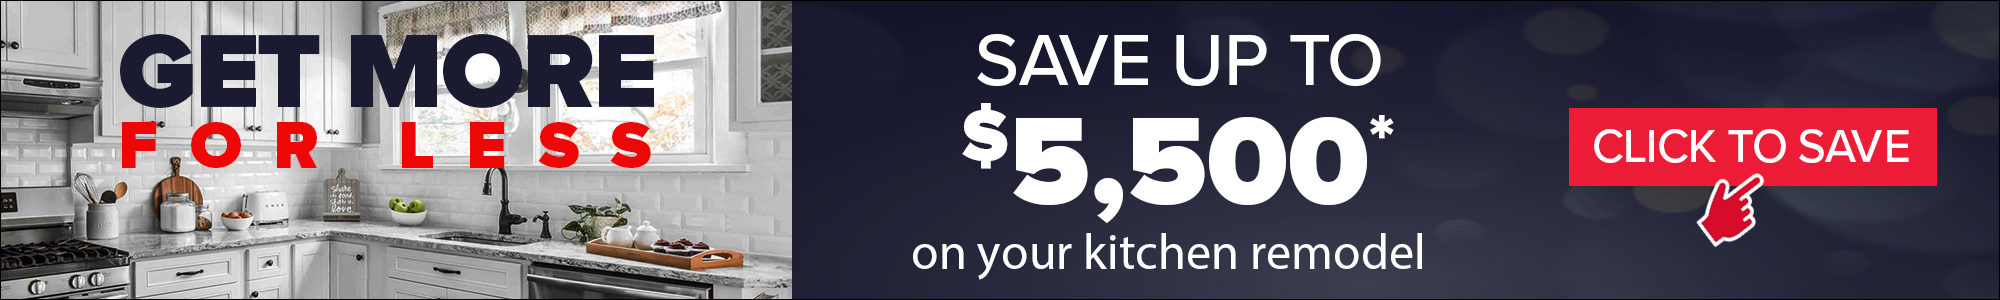 Save up to $5,500 on your kitchen remodel